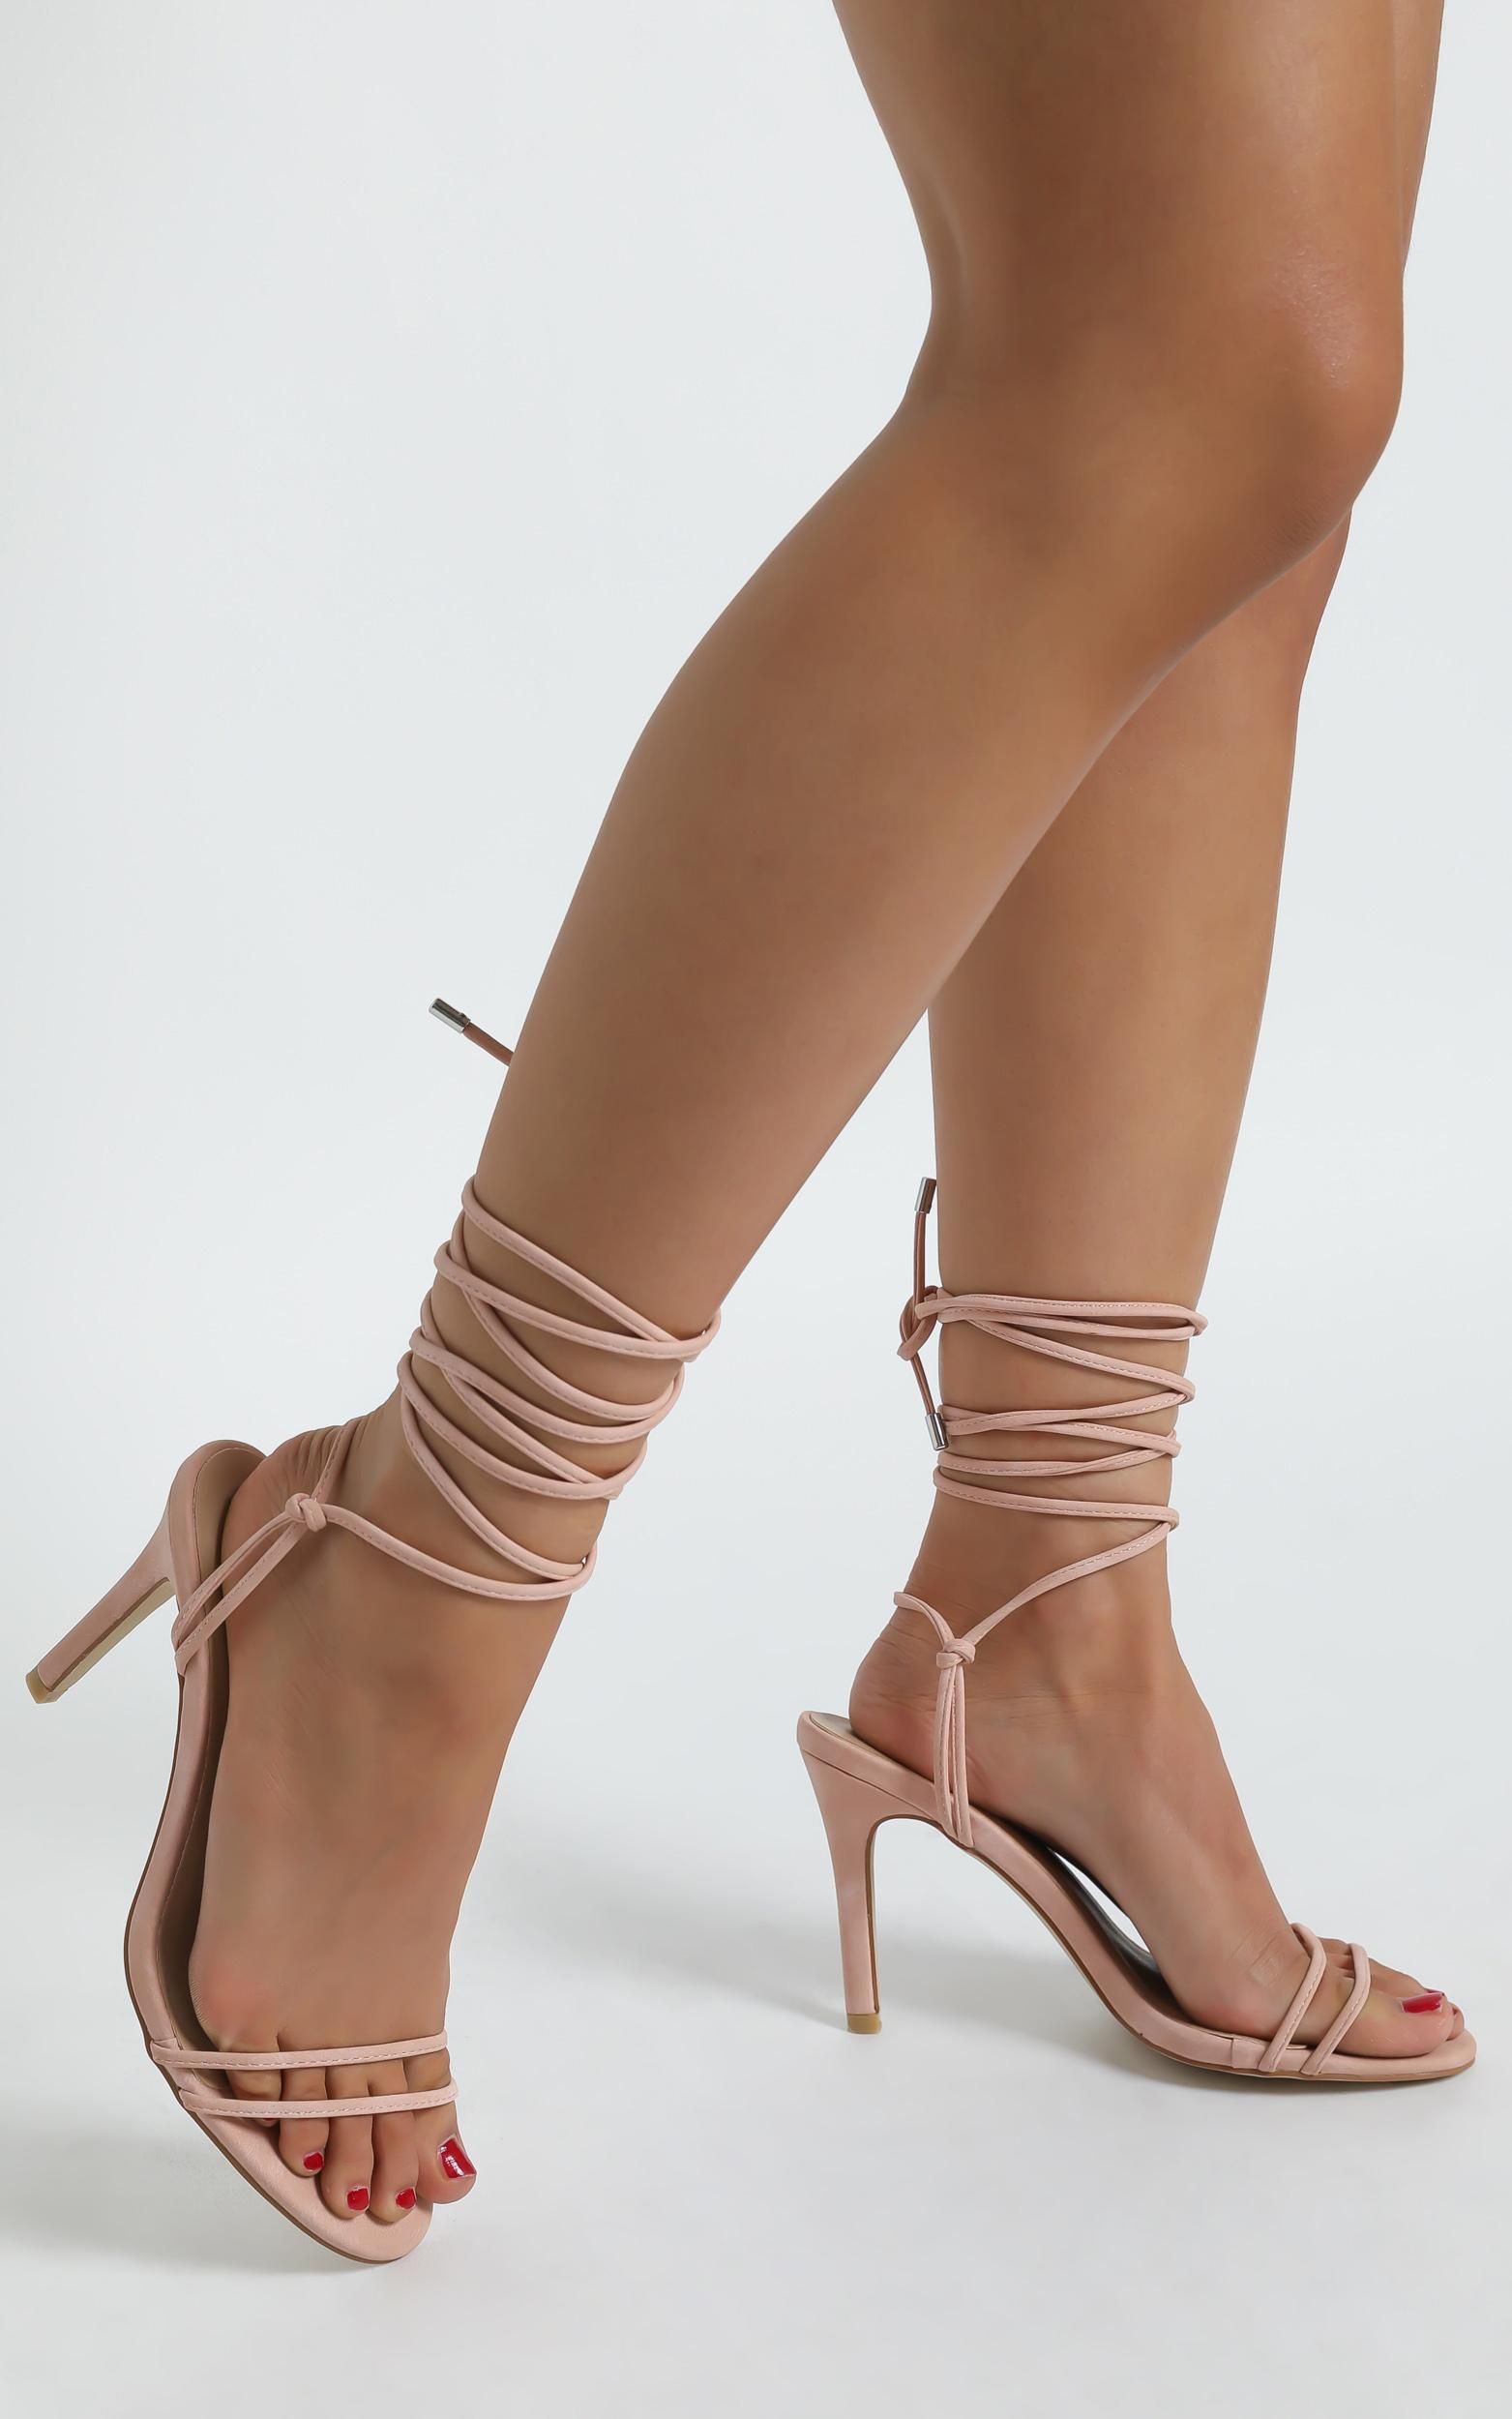 Therapy - Vibes Heels in Pastel Pink - 5, Pink, hi-res image number null